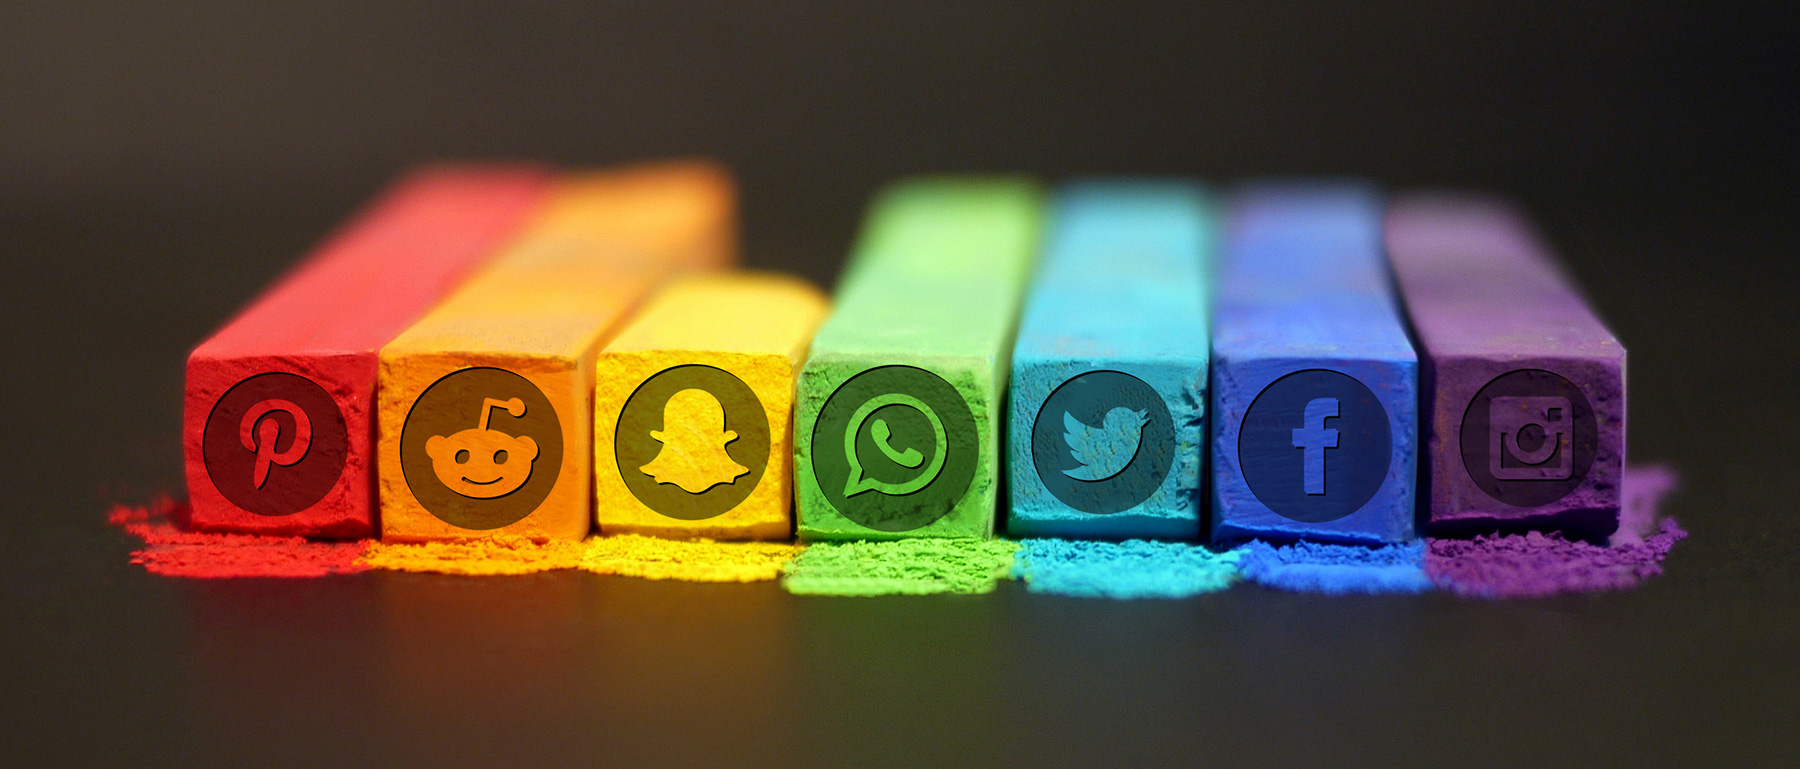 Schools - are you getting the most out of social media?